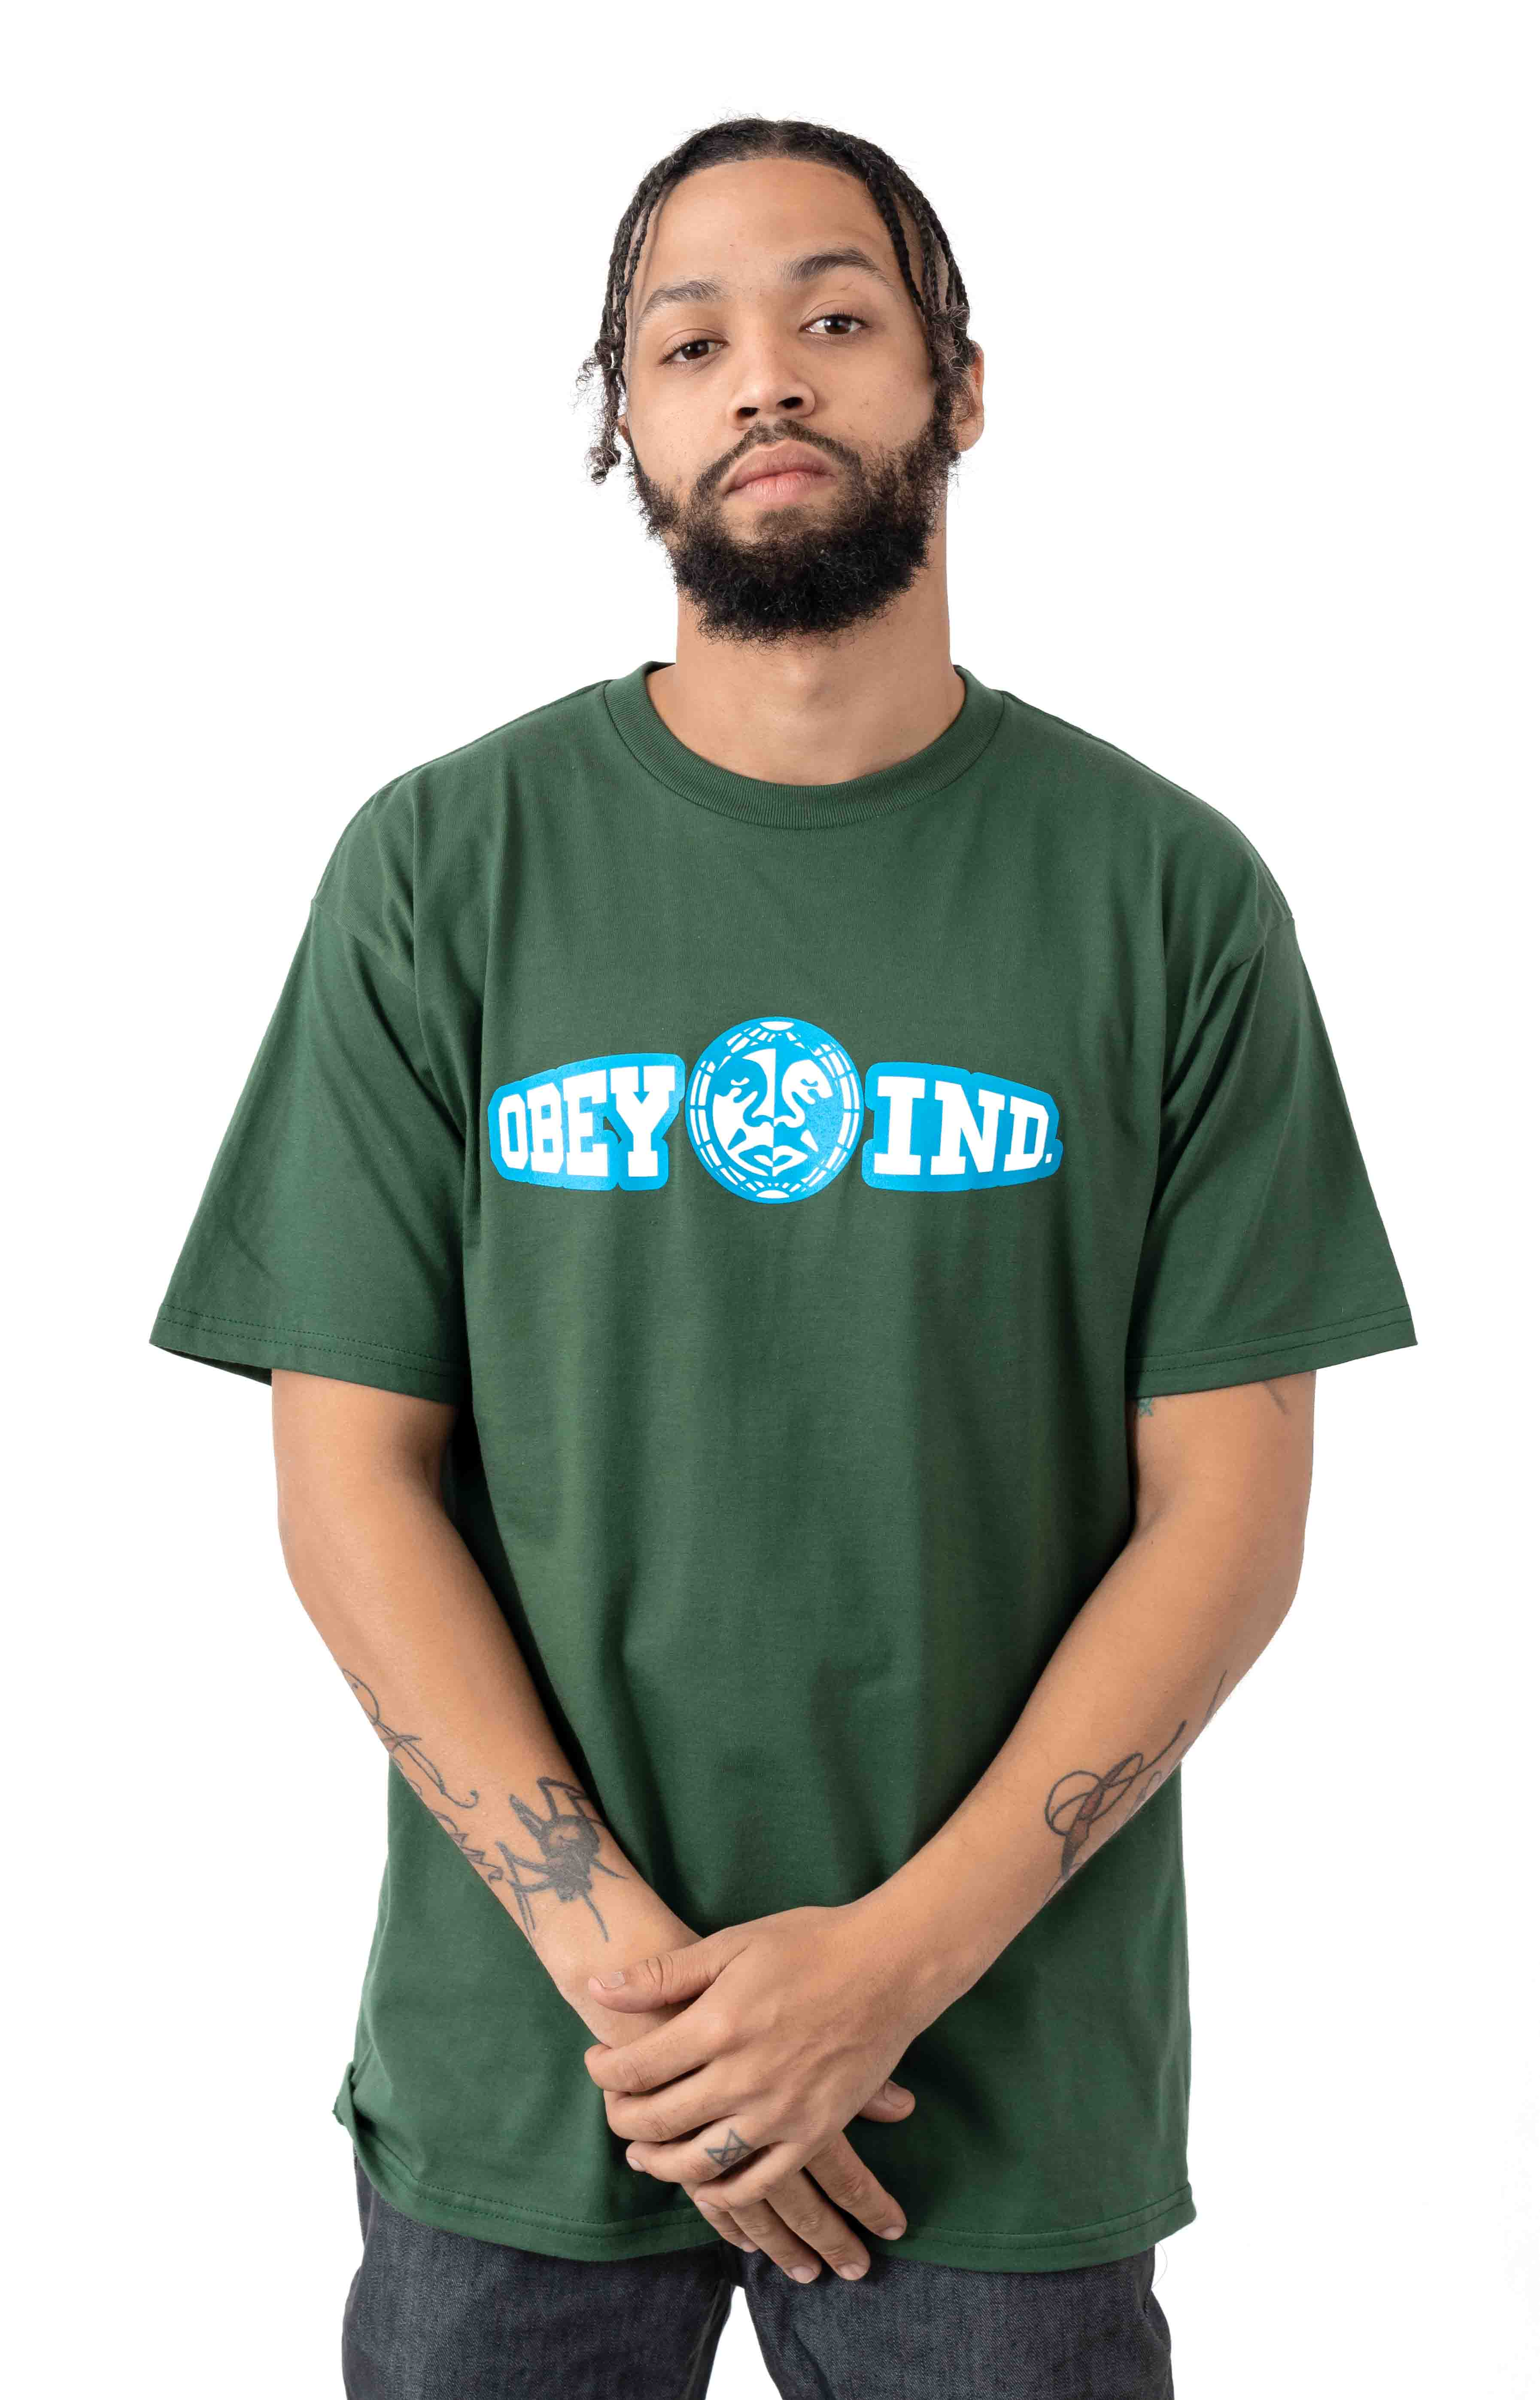 Obey Unity & Respect T-Shirt - Forest Green